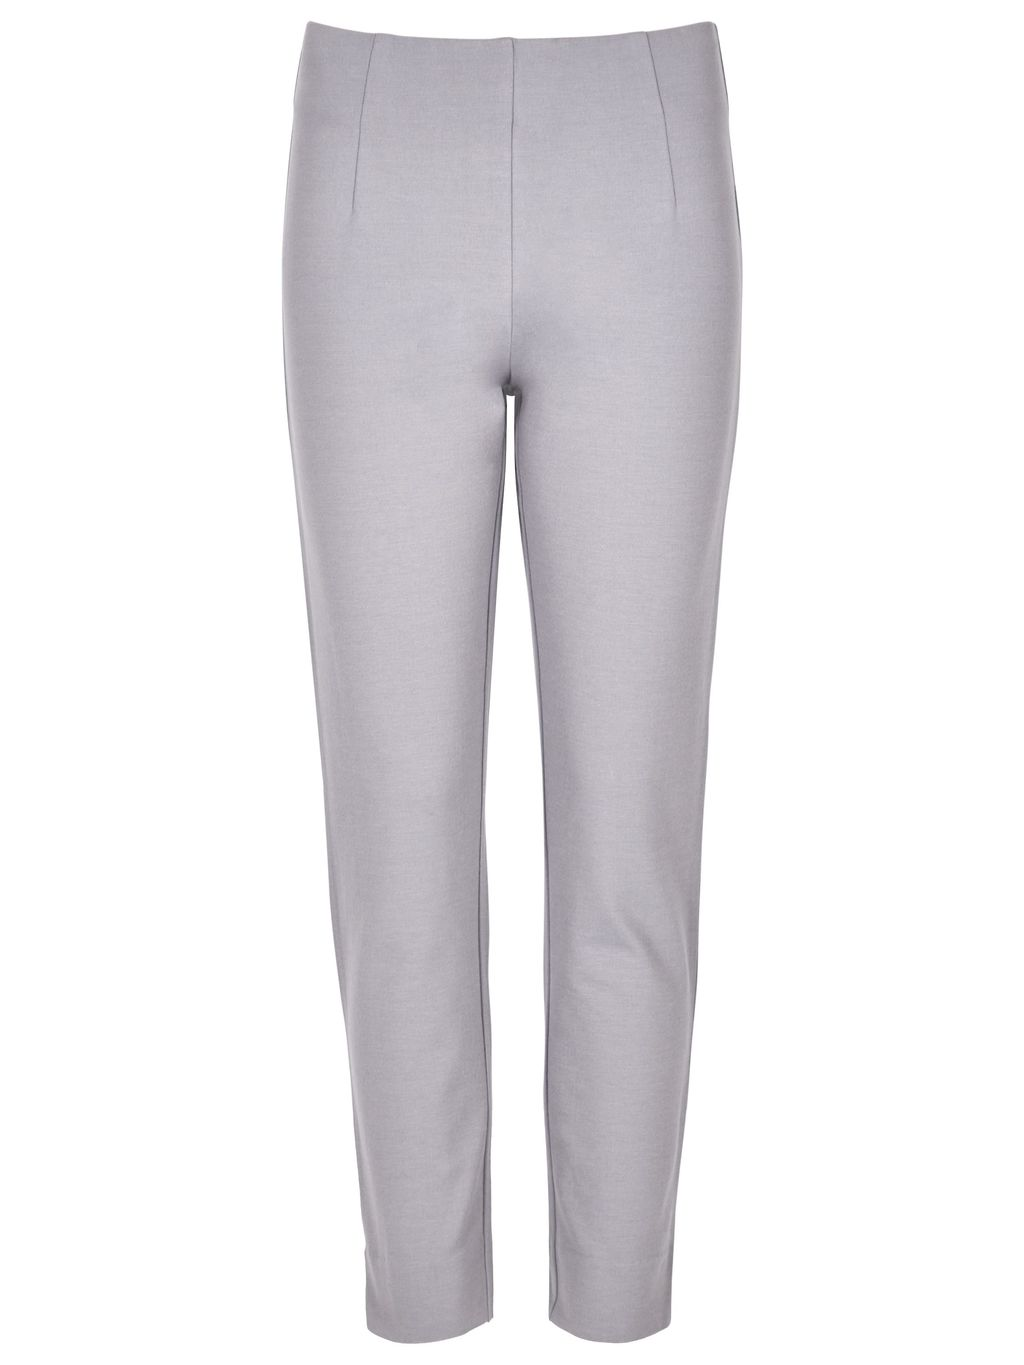 Miracle Capri Trouser, Grey - pattern: plain; style: capri; waist: mid/regular rise; predominant colour: mid grey; length: ankle length; fibres: cotton - 100%; texture group: cotton feel fabrics; fit: slim leg; pattern type: fabric; occasions: creative work; season: s/s 2016; wardrobe: basic